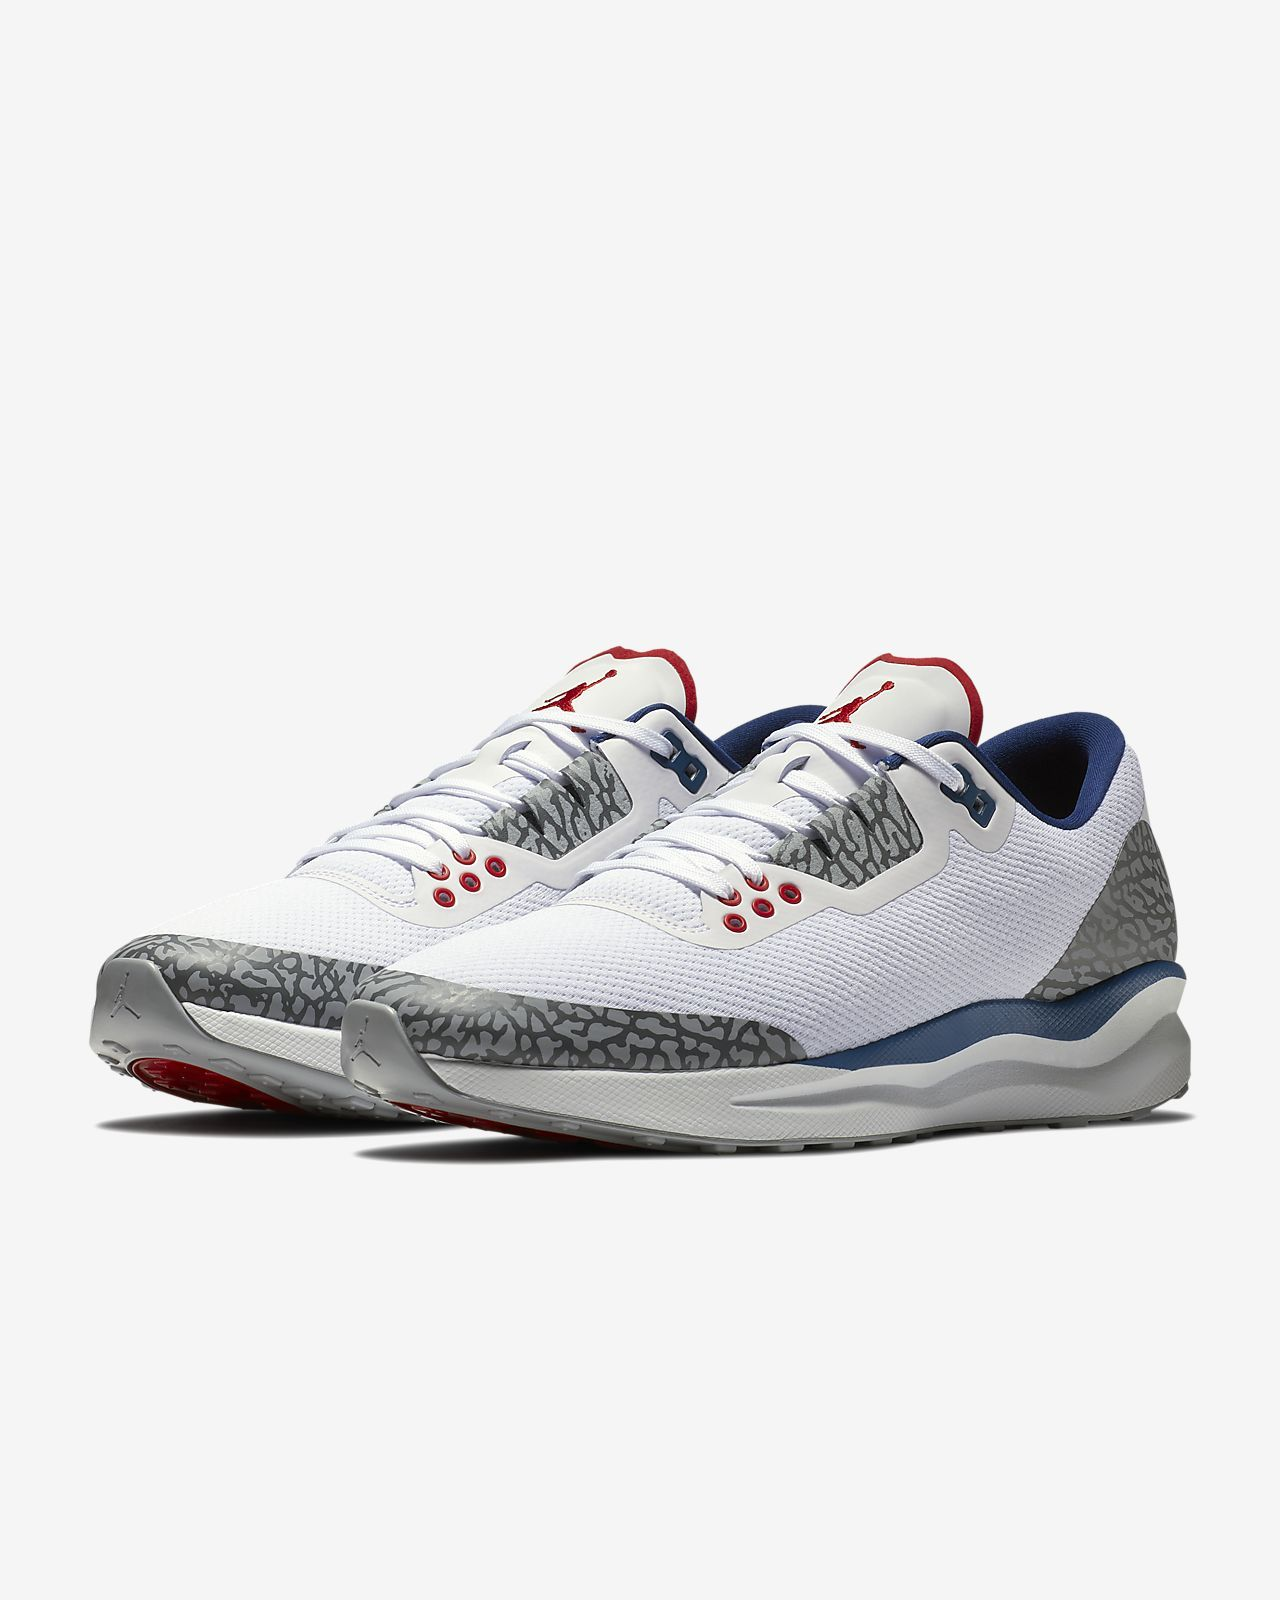 reputable site 8d9b3 88ab0 Jordan Zoom Tenacity 88 Men s Running Shoe. Find this Pin and more on  sporty shoes ...